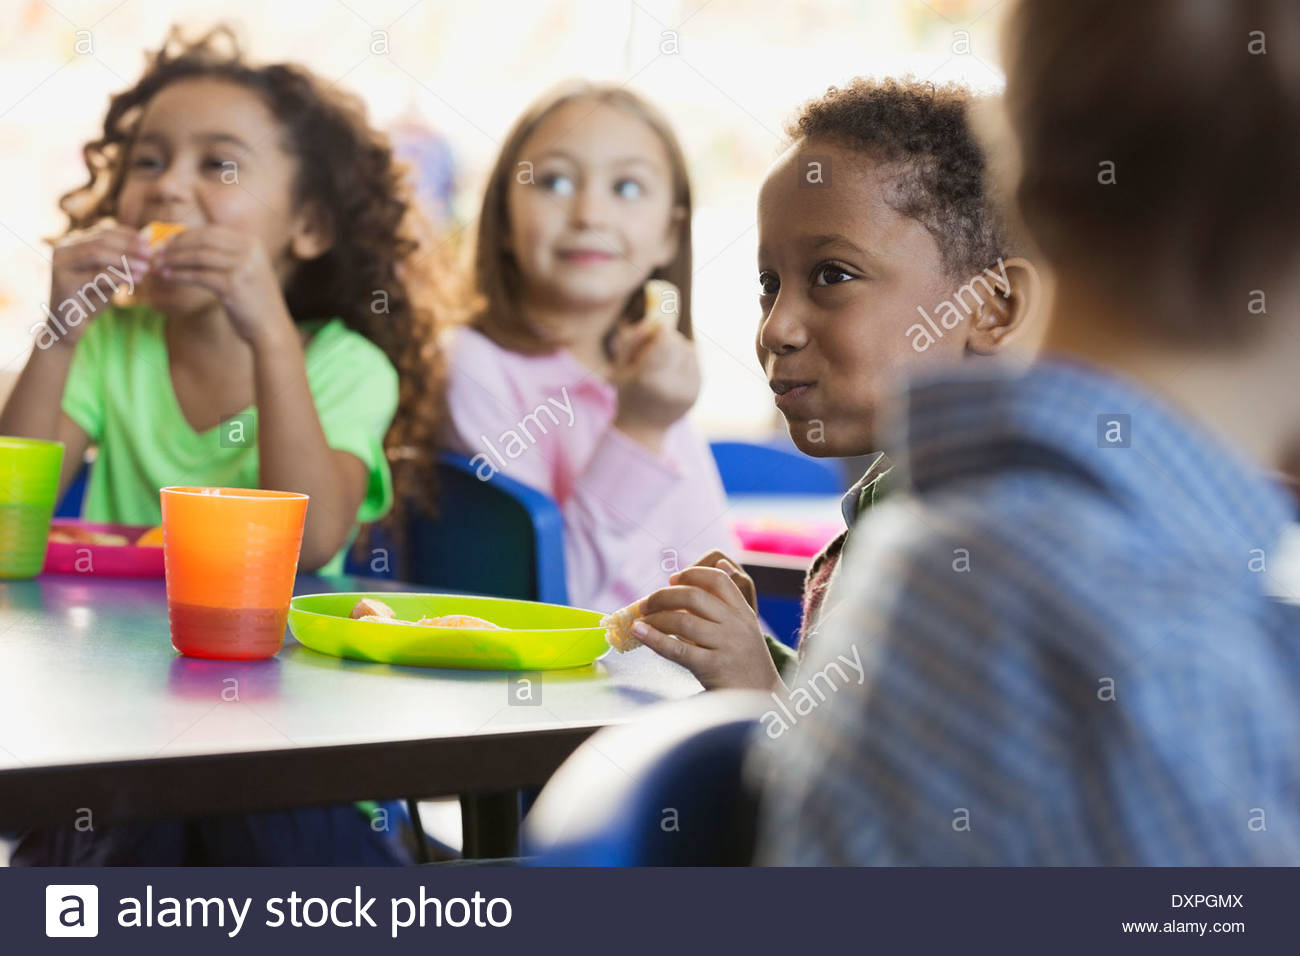 Children eating snacks in elementary school classroom - Stock Image